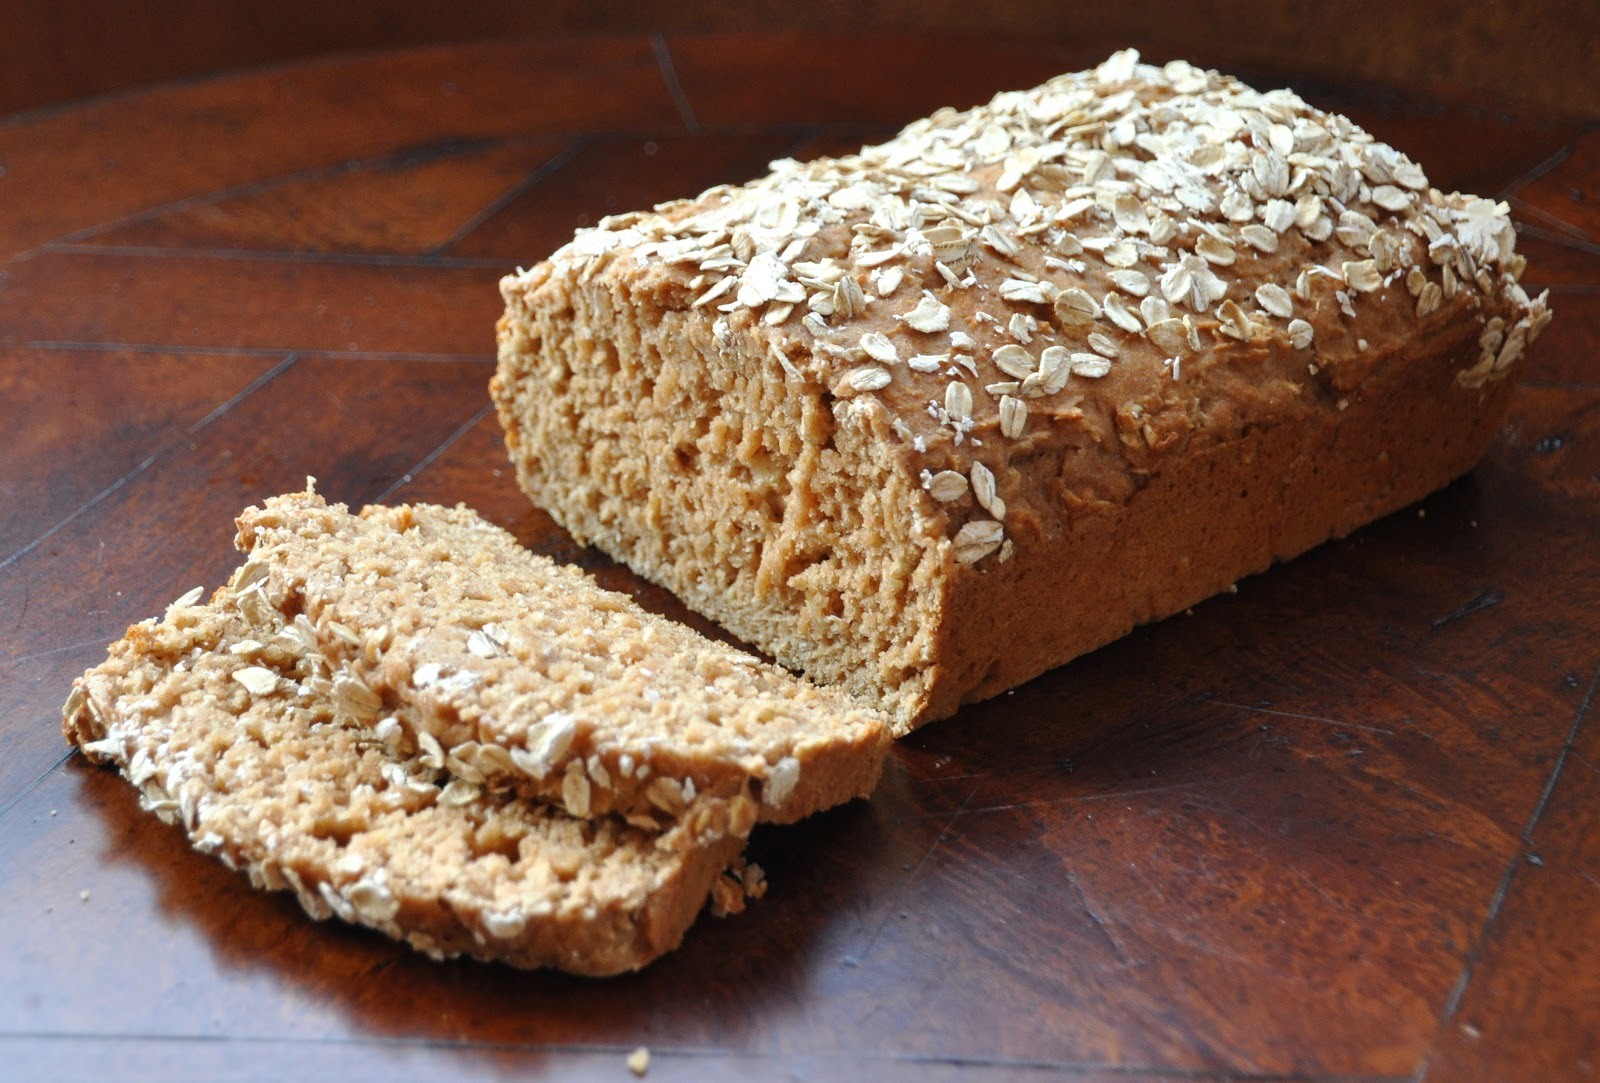 LA GRAHAM: WHOLE WHEAT HONEY OAT QUICK BREAD- CLEAN EATING